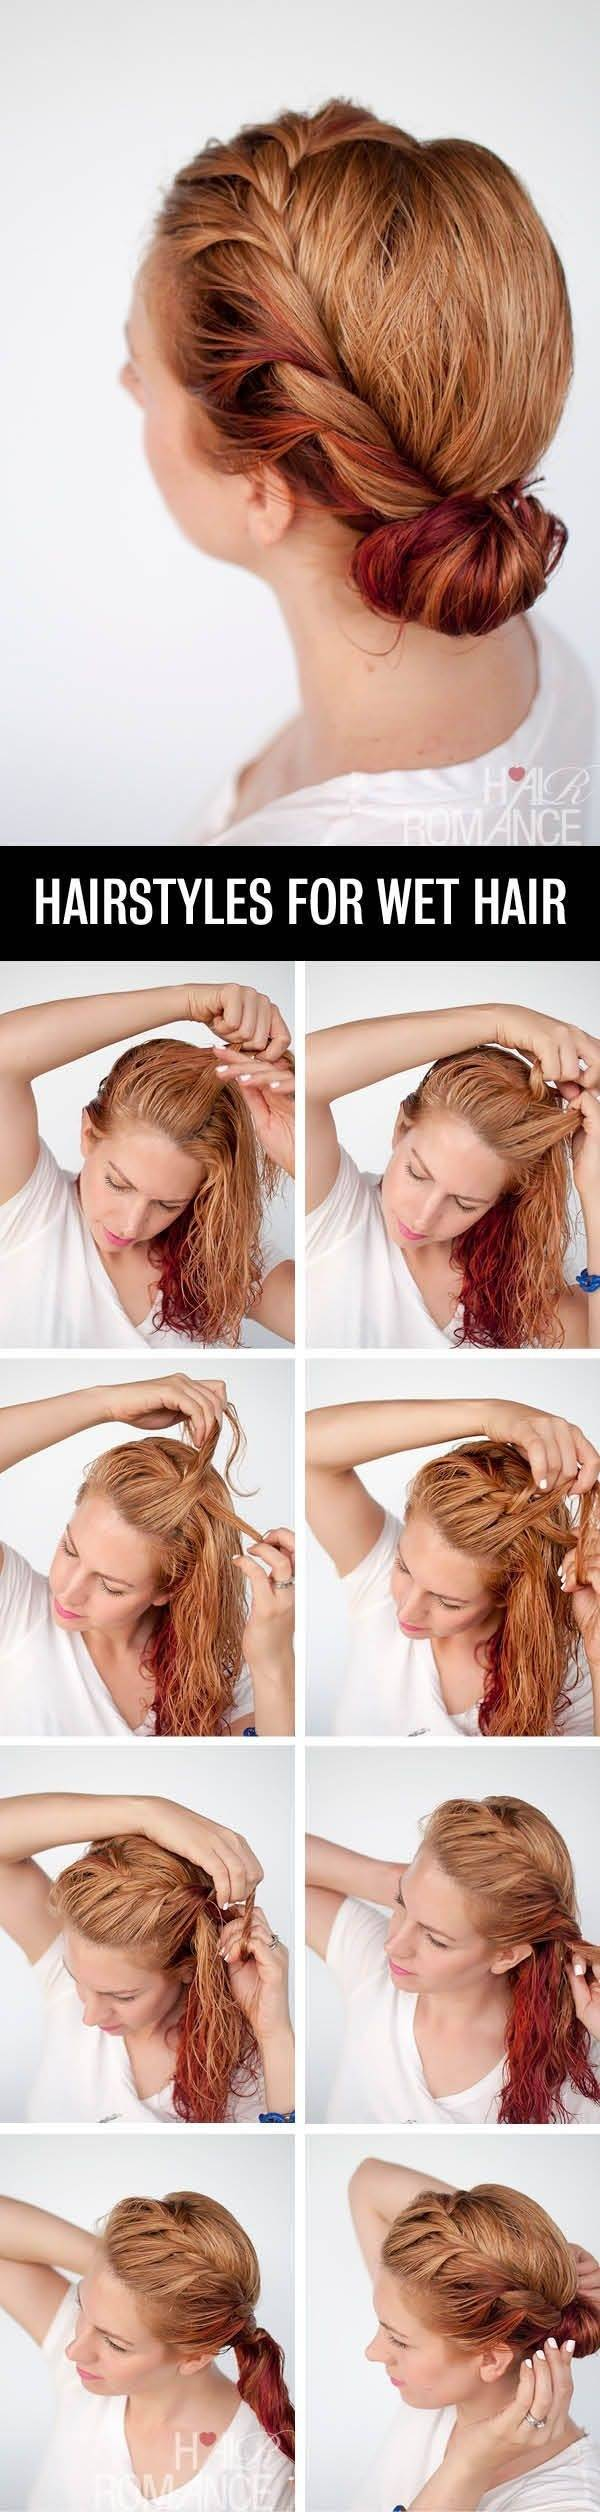 easy hairstyles every girl needs to keep in her reservoir when